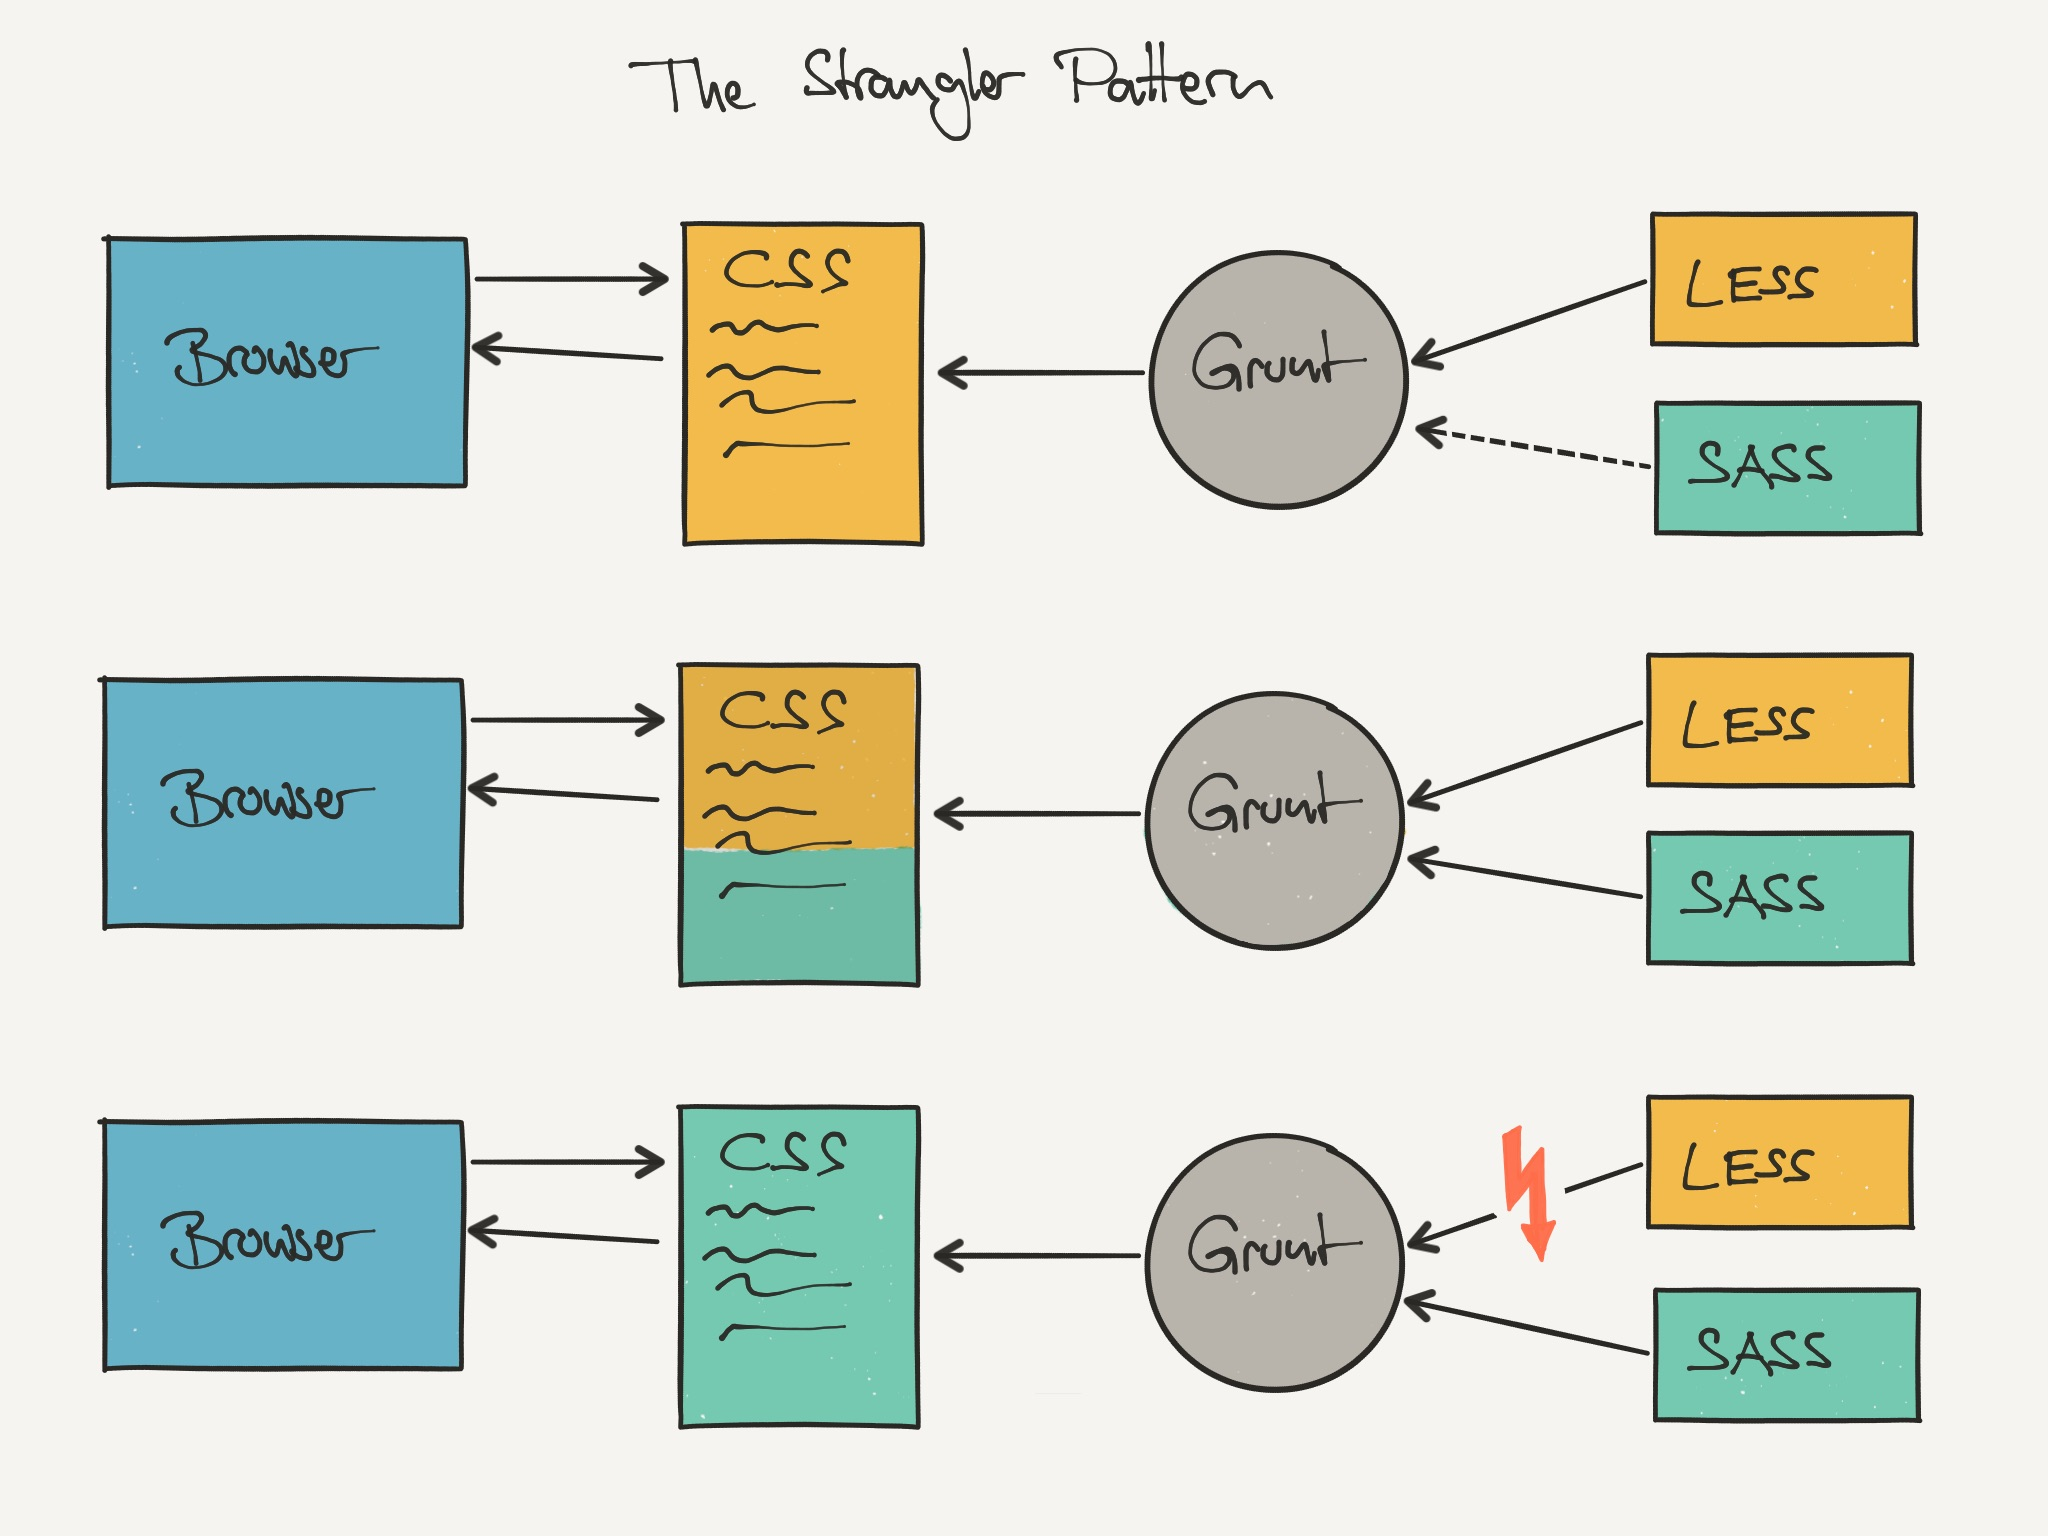 Strangler Pattern: Approach to switch from LESS to SASS